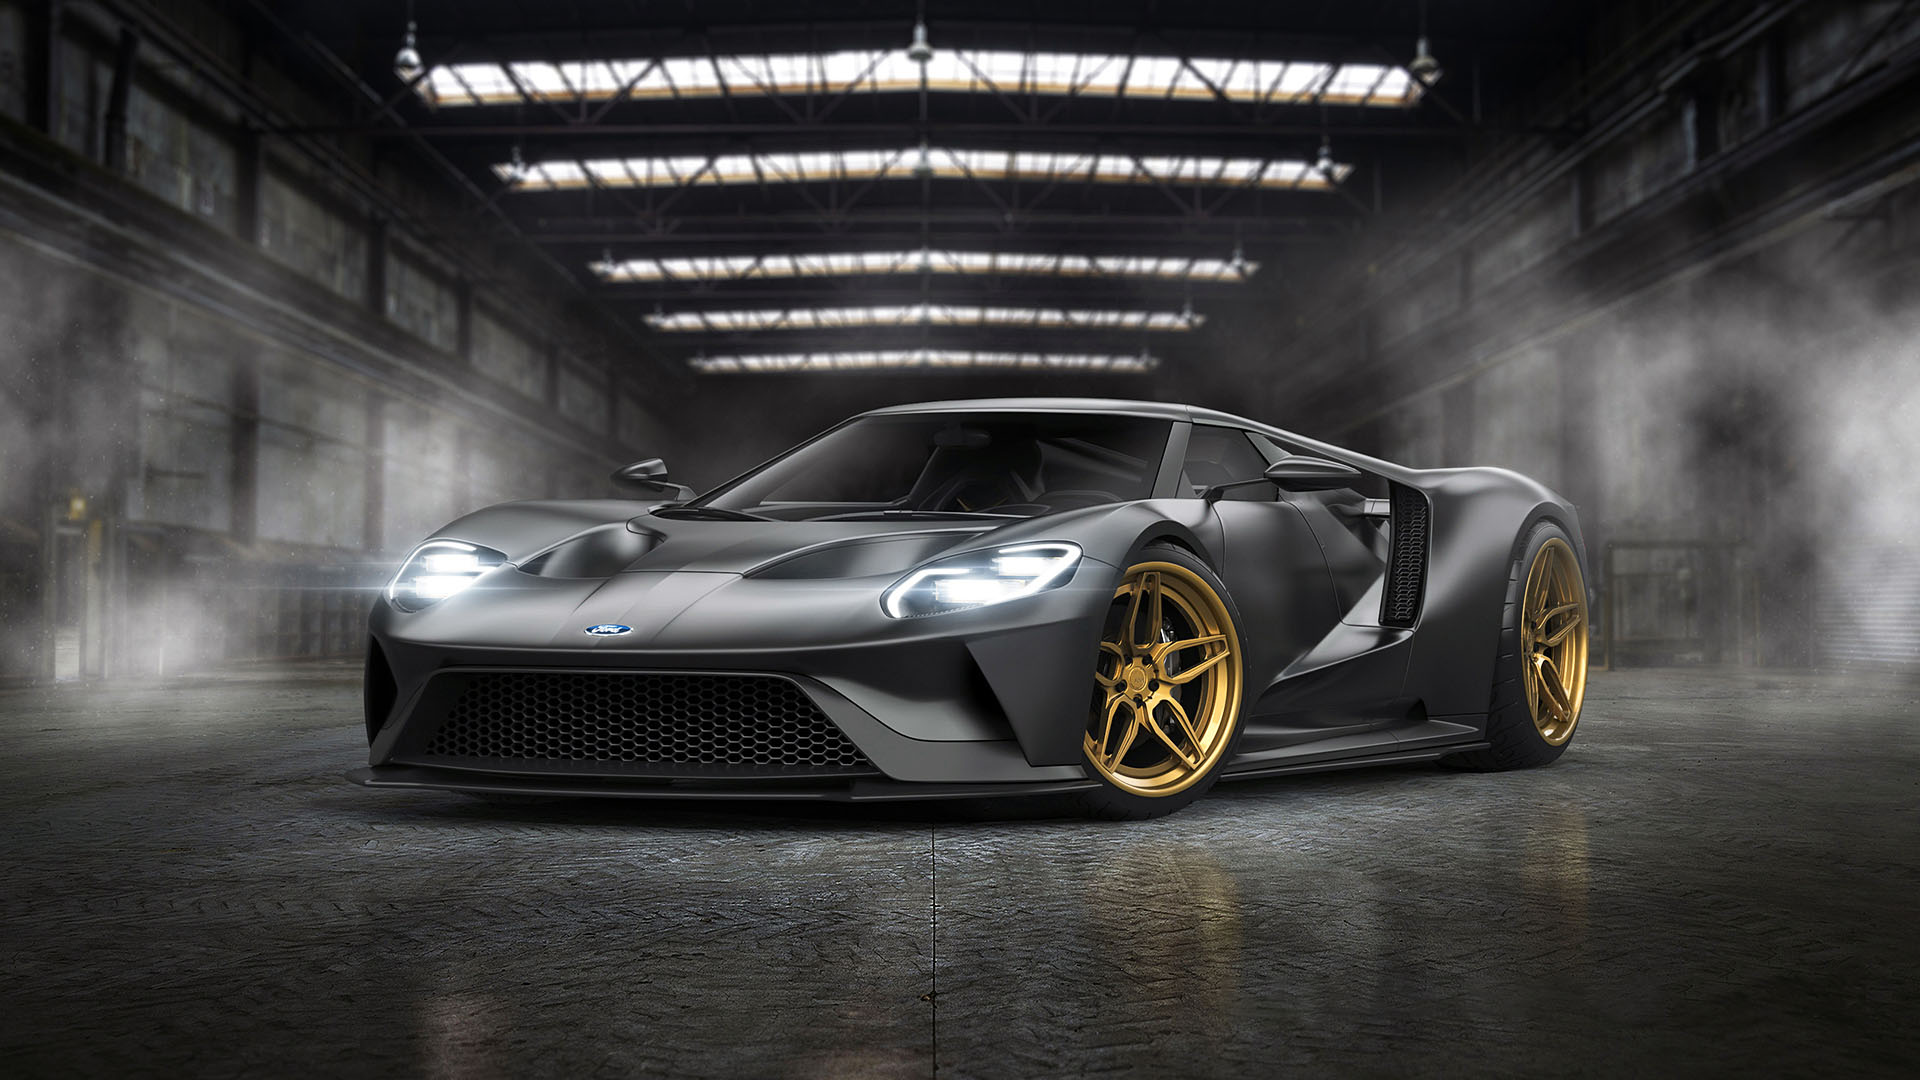 ford gt adv 1 wheels grey color tuning by gurnade 12x18 20x30 24x36 32x48 Inch poster Print 1(China (Mainland))